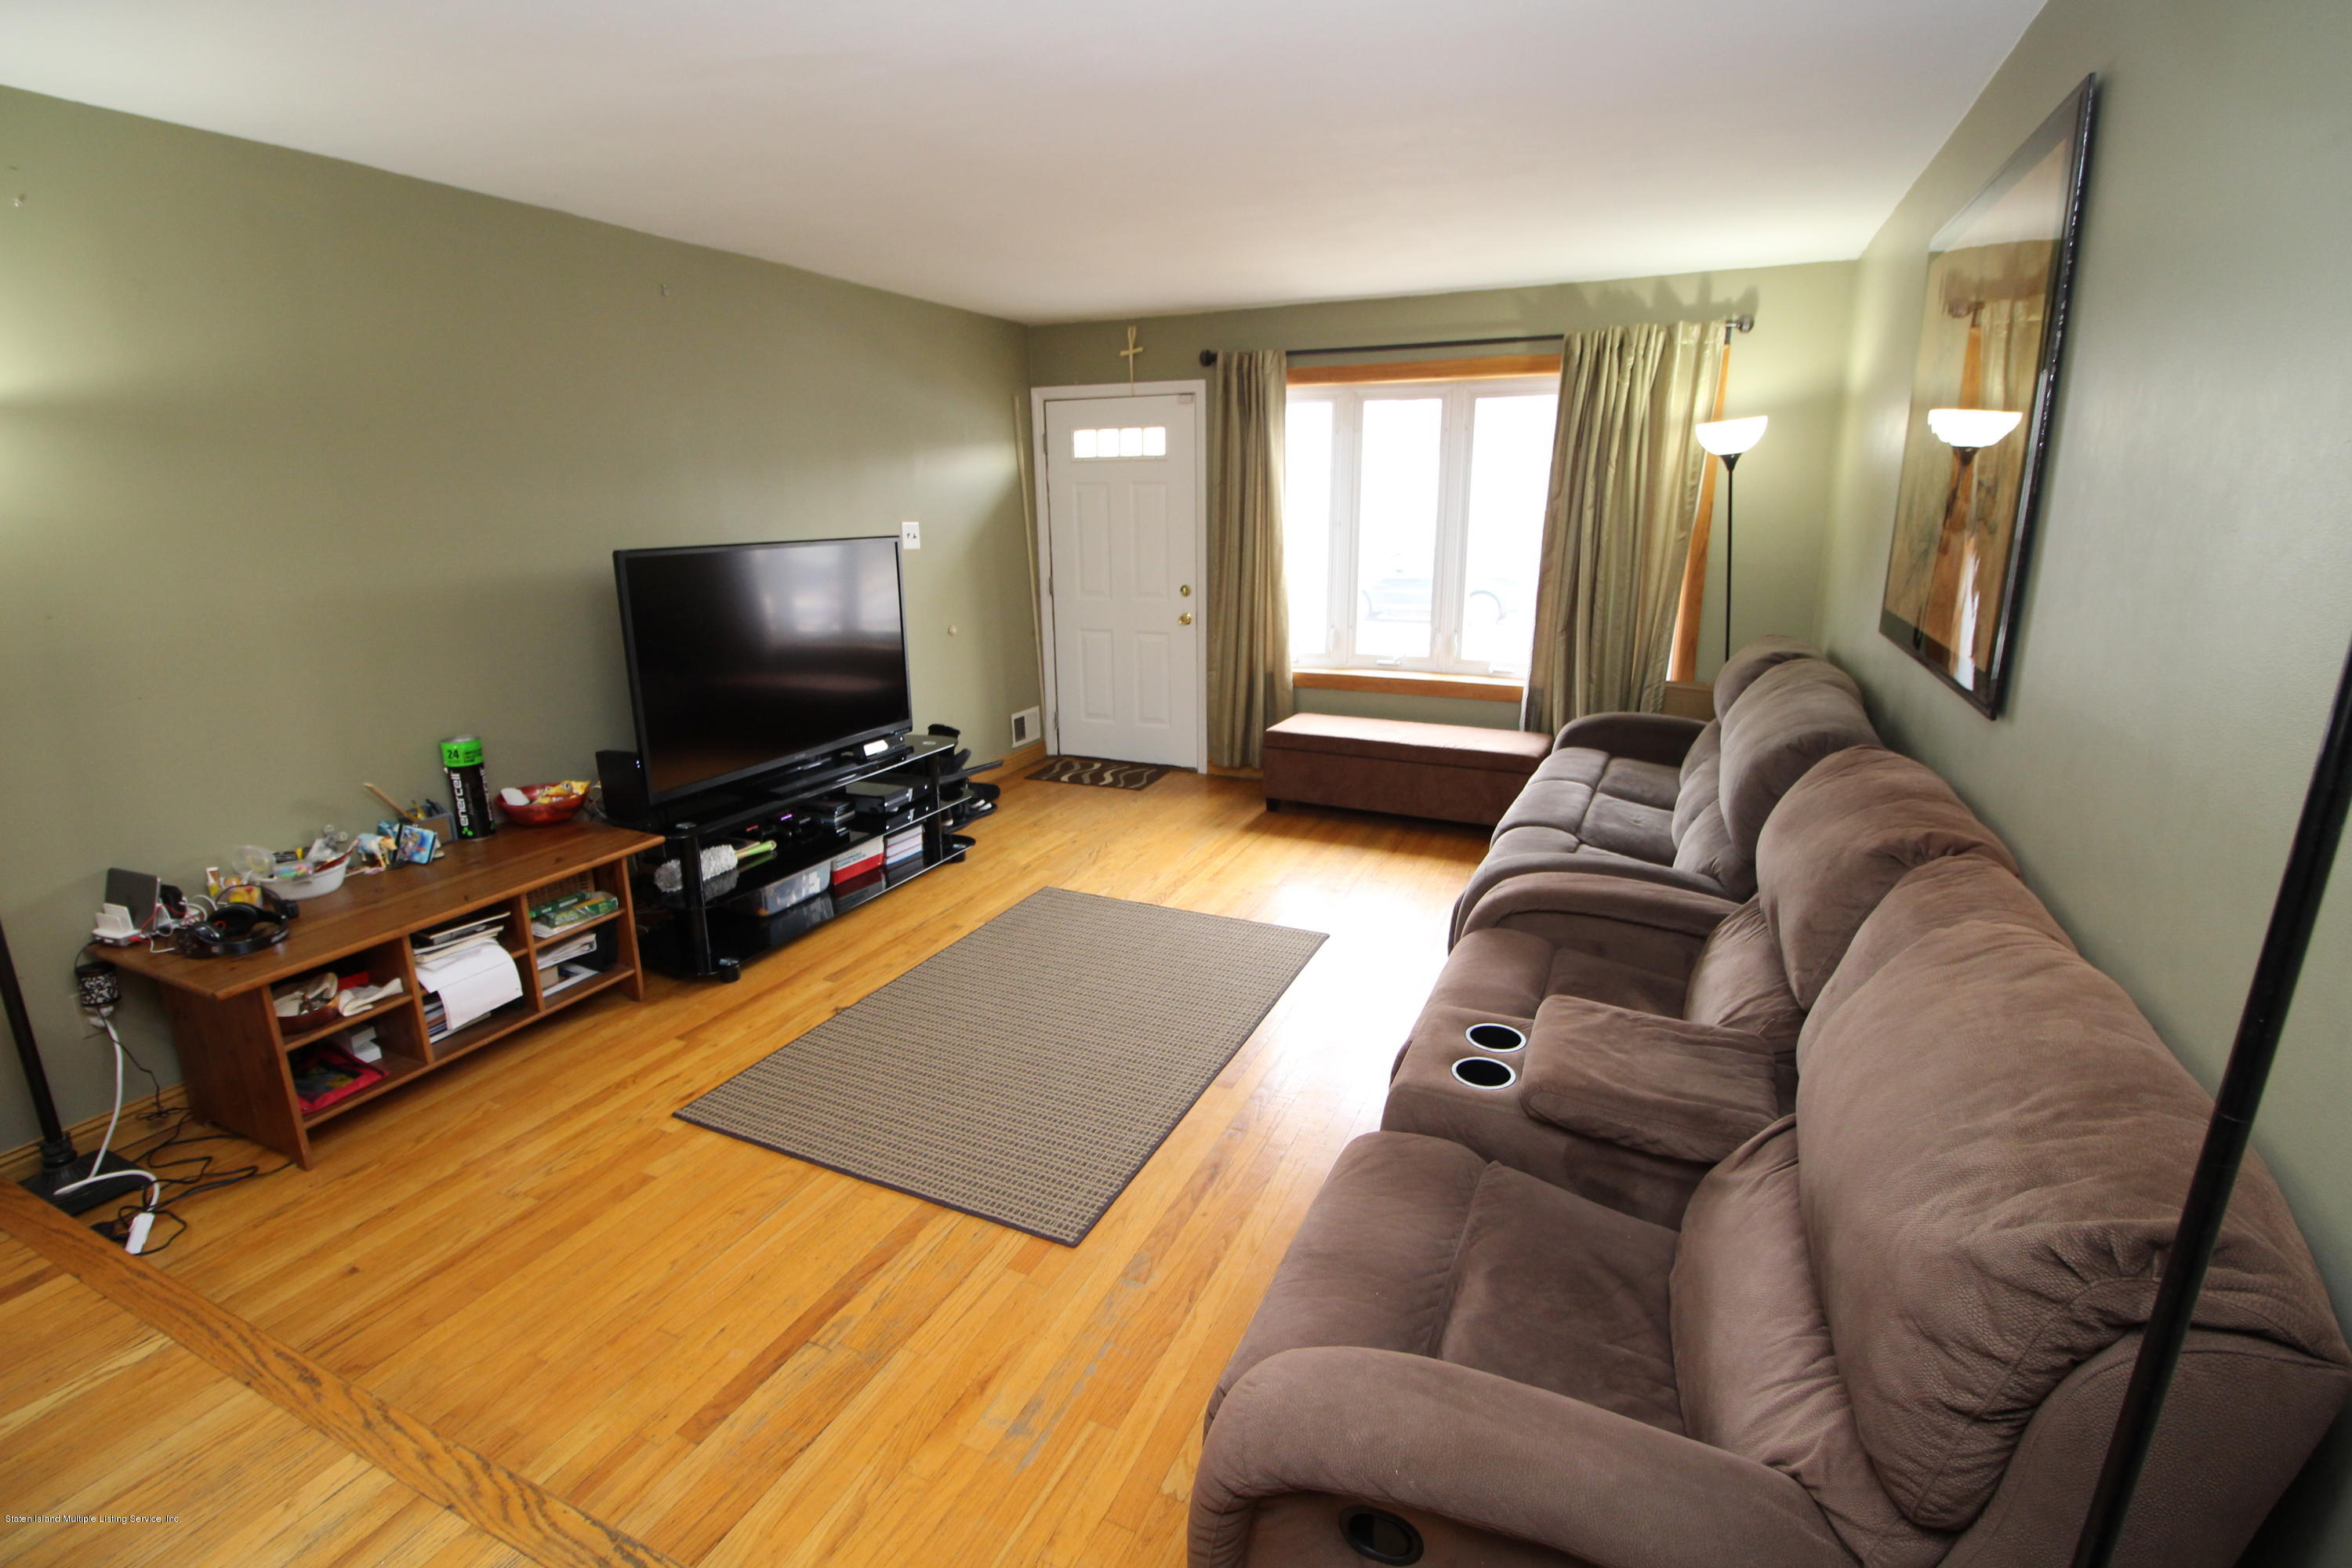 Single Family - Semi-Attached 48 Mulberry Avenue  Staten Island, NY 10314, MLS-1126171-3